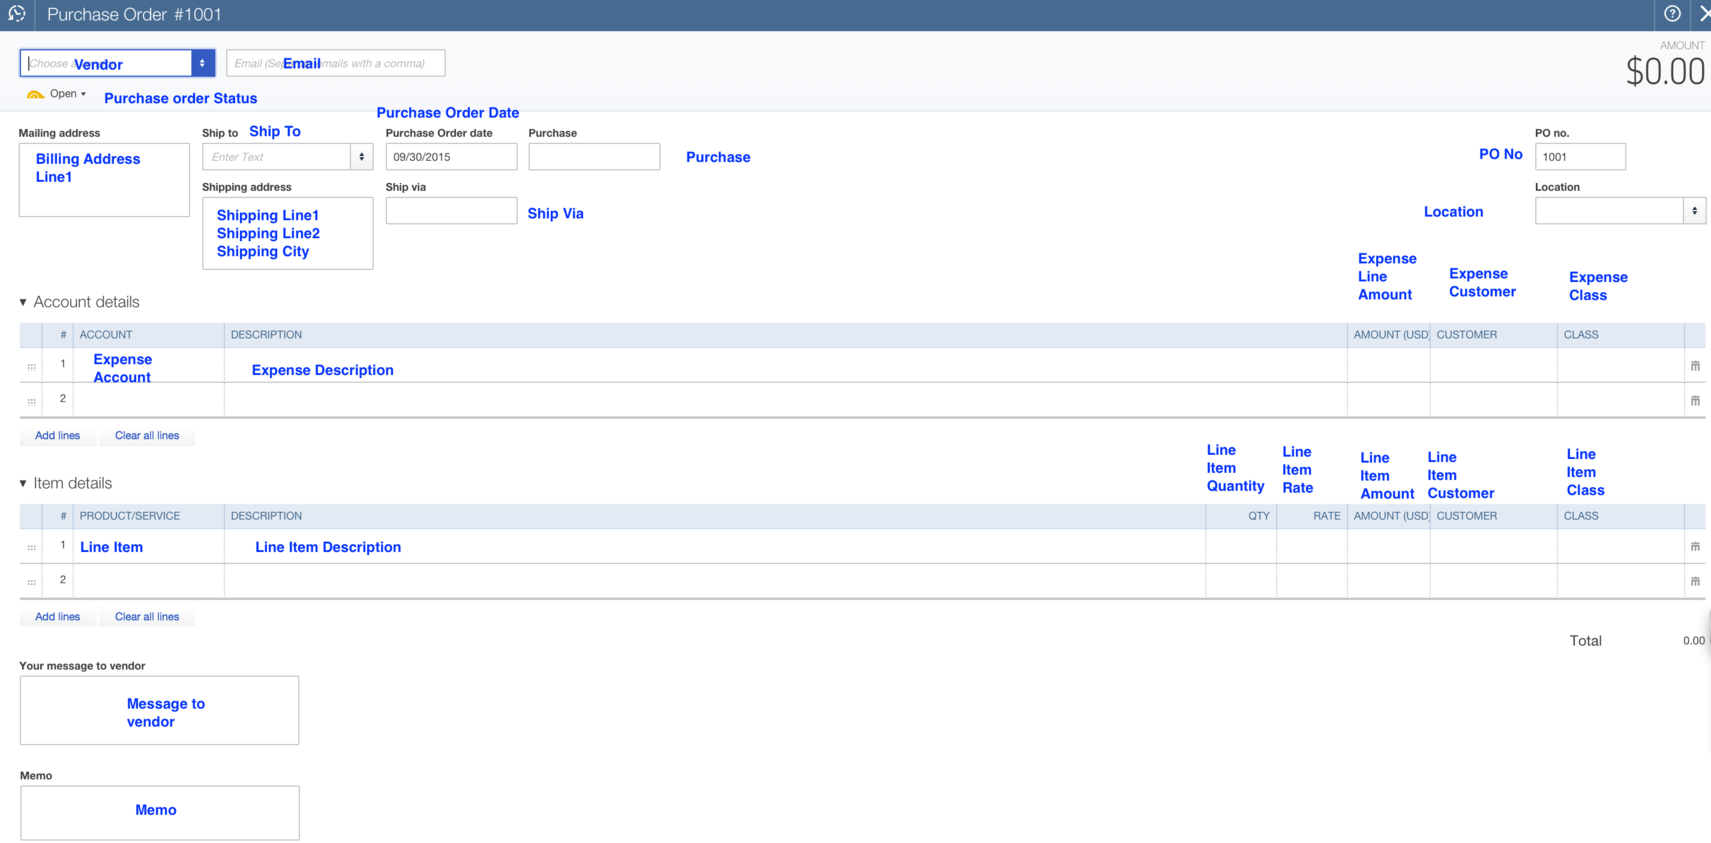 Import Purchase Orders into QuickBooks Online